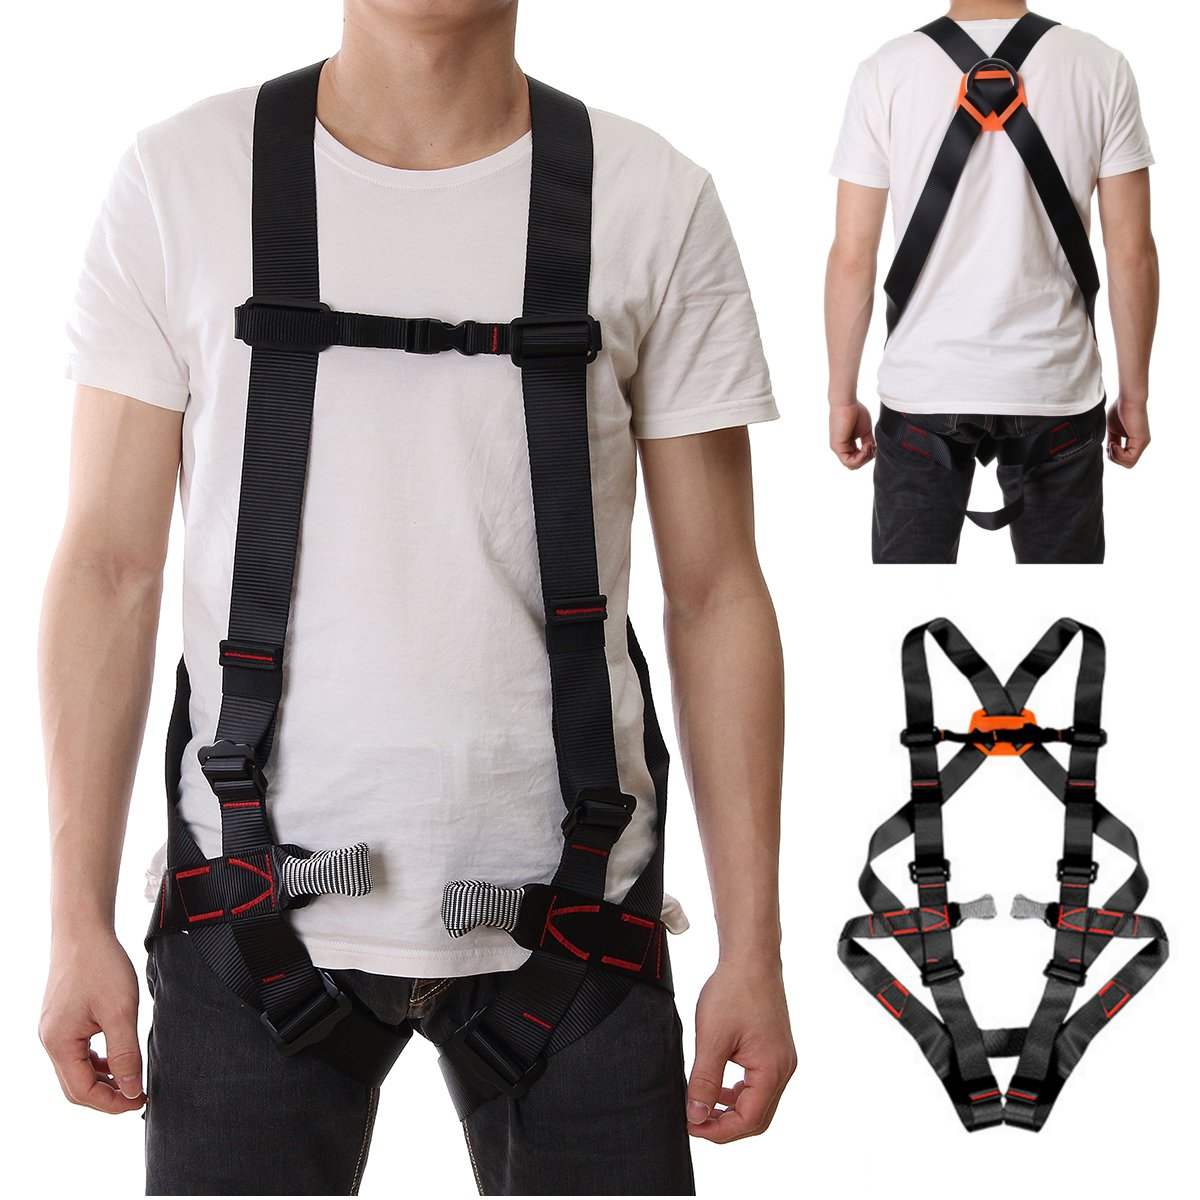 Outdoor Climbing Safety Belt Climb Mountain Rope Safety Waist Belt Protection Equipment Safety Harness Body Protecting xinda camping outdoor hiking rock climbing half body waist support safety belt harness aerial equipment